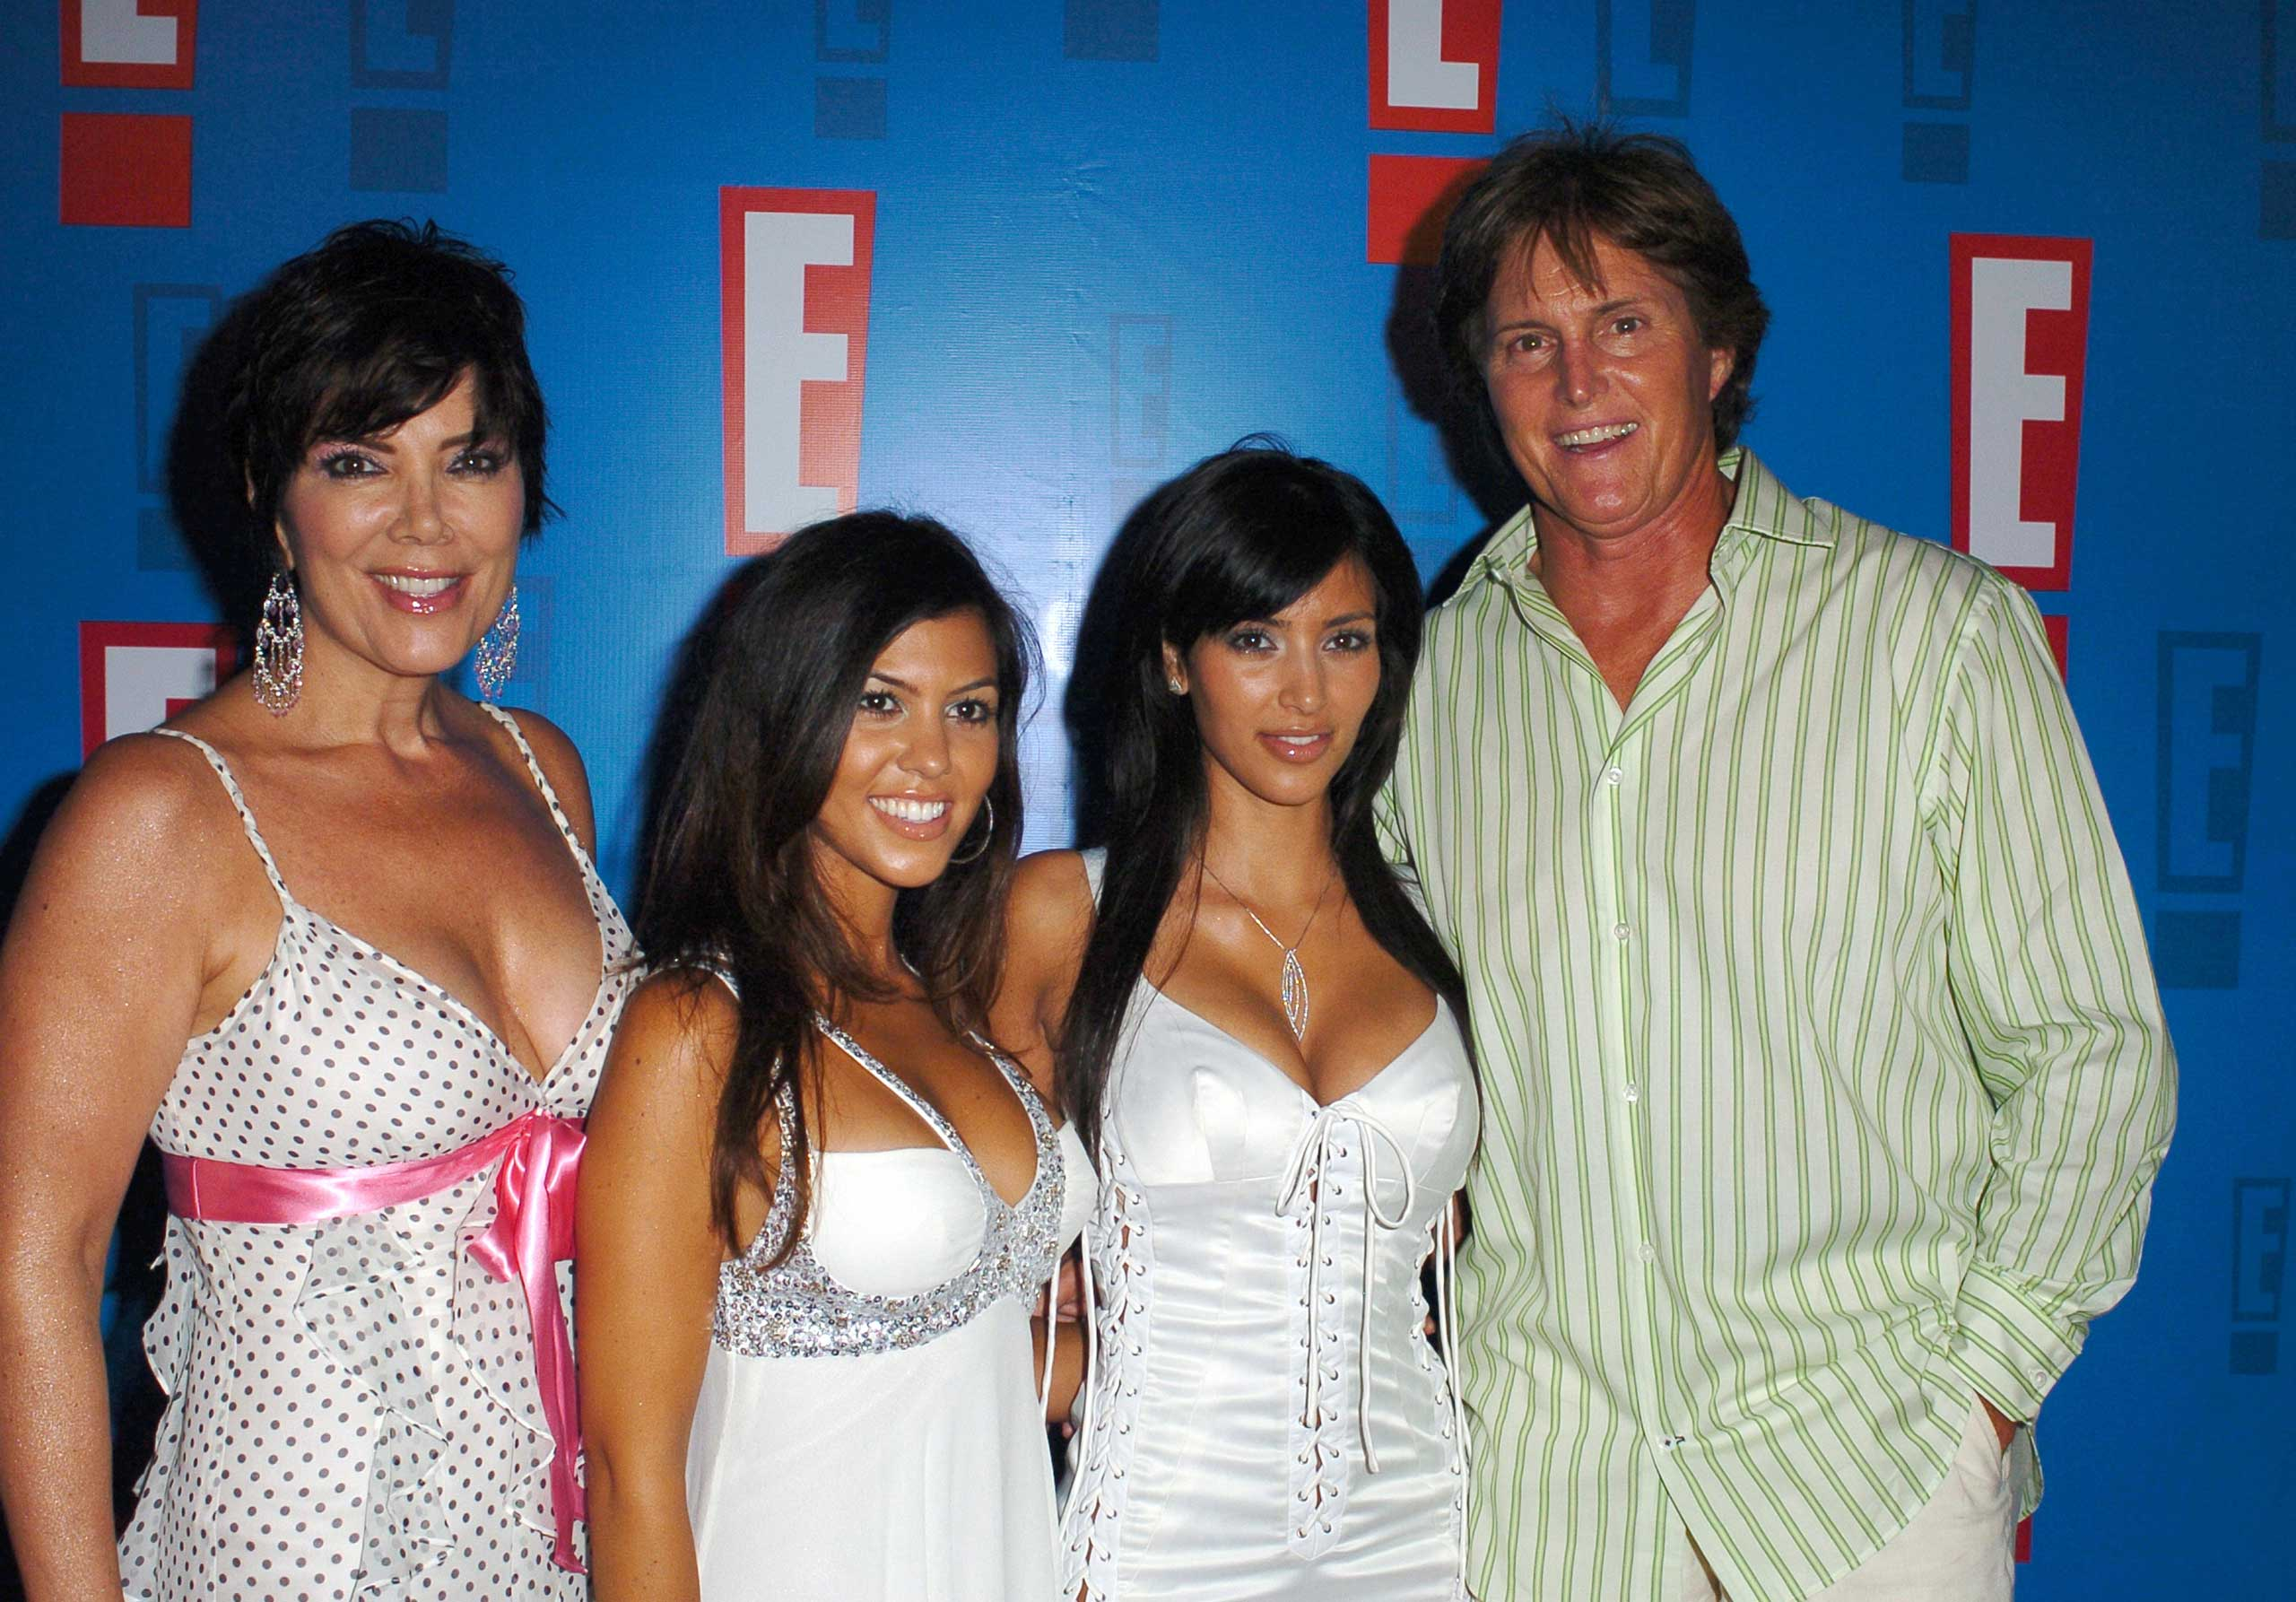 Jenner, seen here in 2005, would re-enter the spotlight thanks to <i>Keeping Up With the Kardashians</i>, which first premiered in 2007.